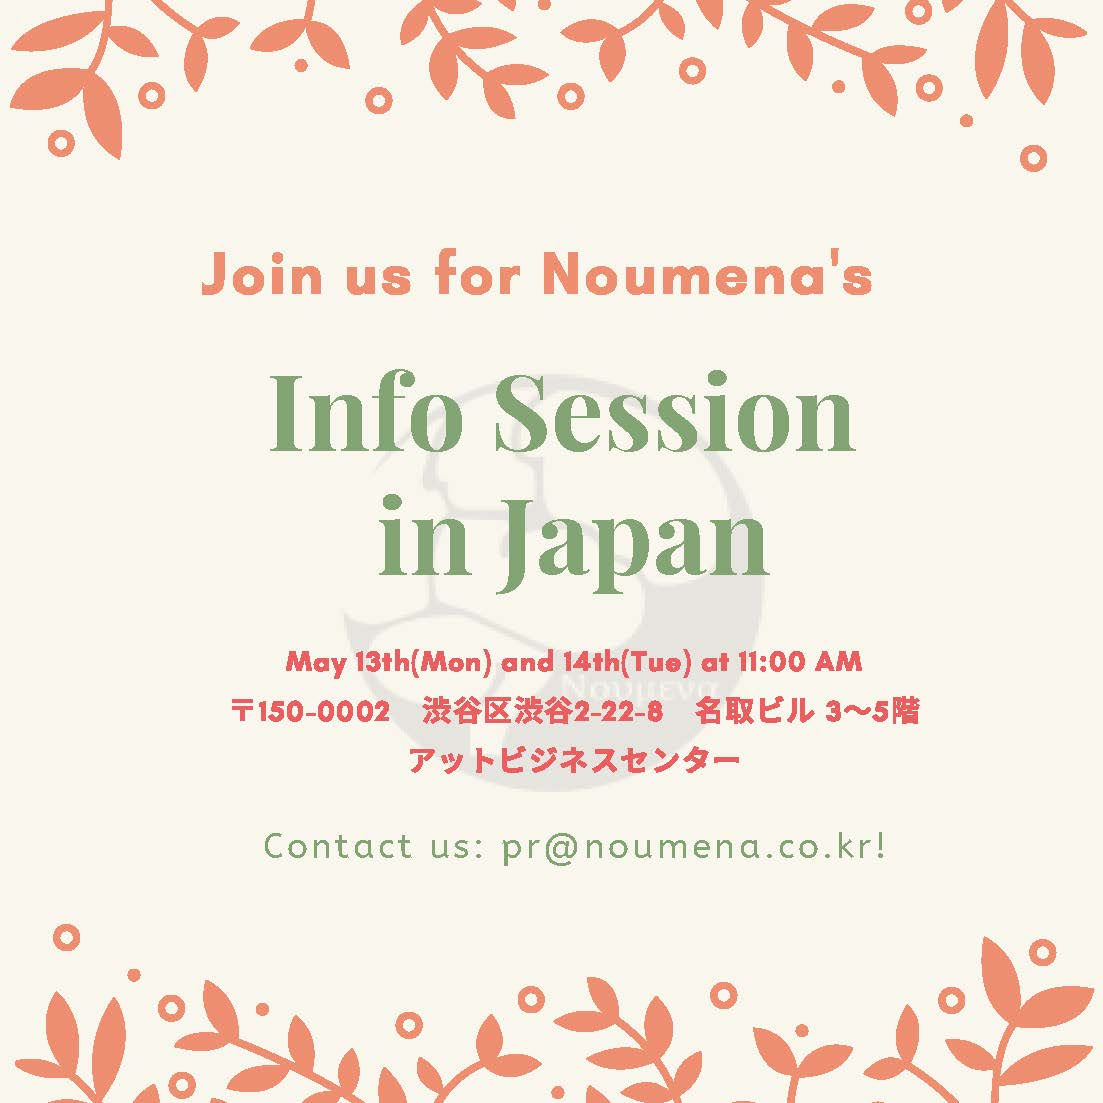 2019 Noumena Info Session in Japan